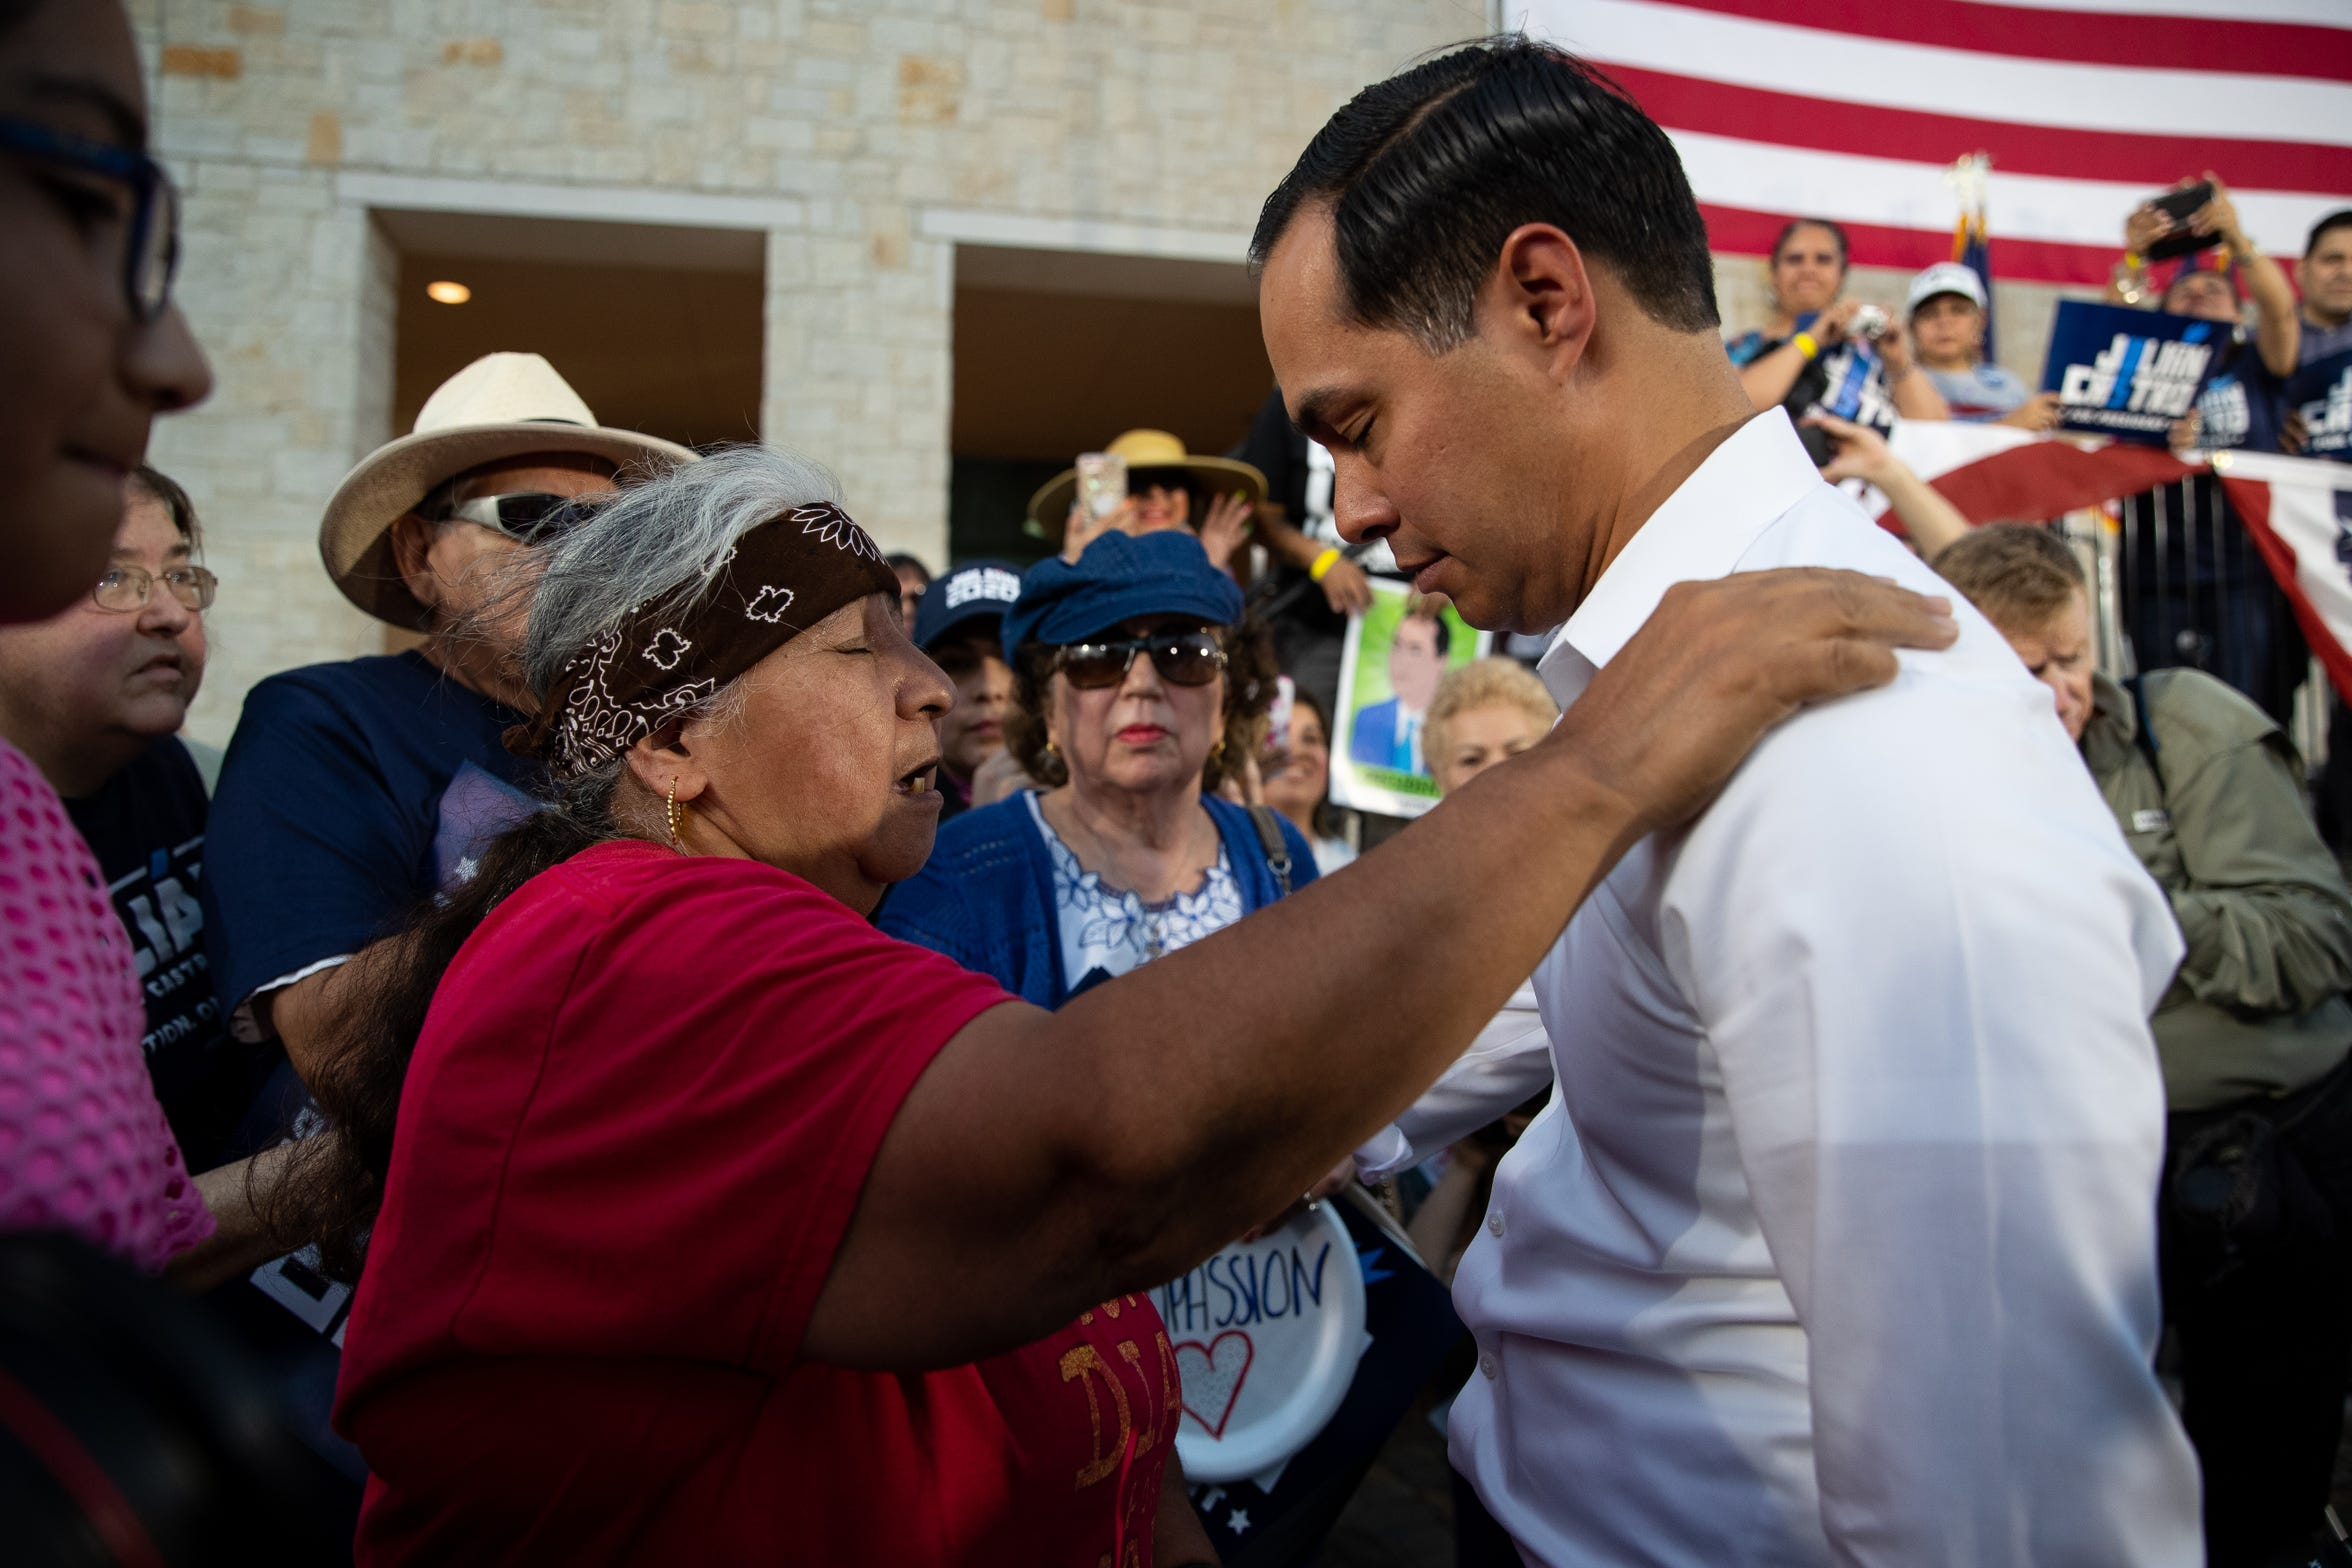 A women prays with Presidential candidate Julian Castro as he greats people and signs autographs after his People First rally in San Antonio, Texas on Wednesday, April 10, 2019. Earlier in the day President Trump hosted a fundraiser in San Antonio.